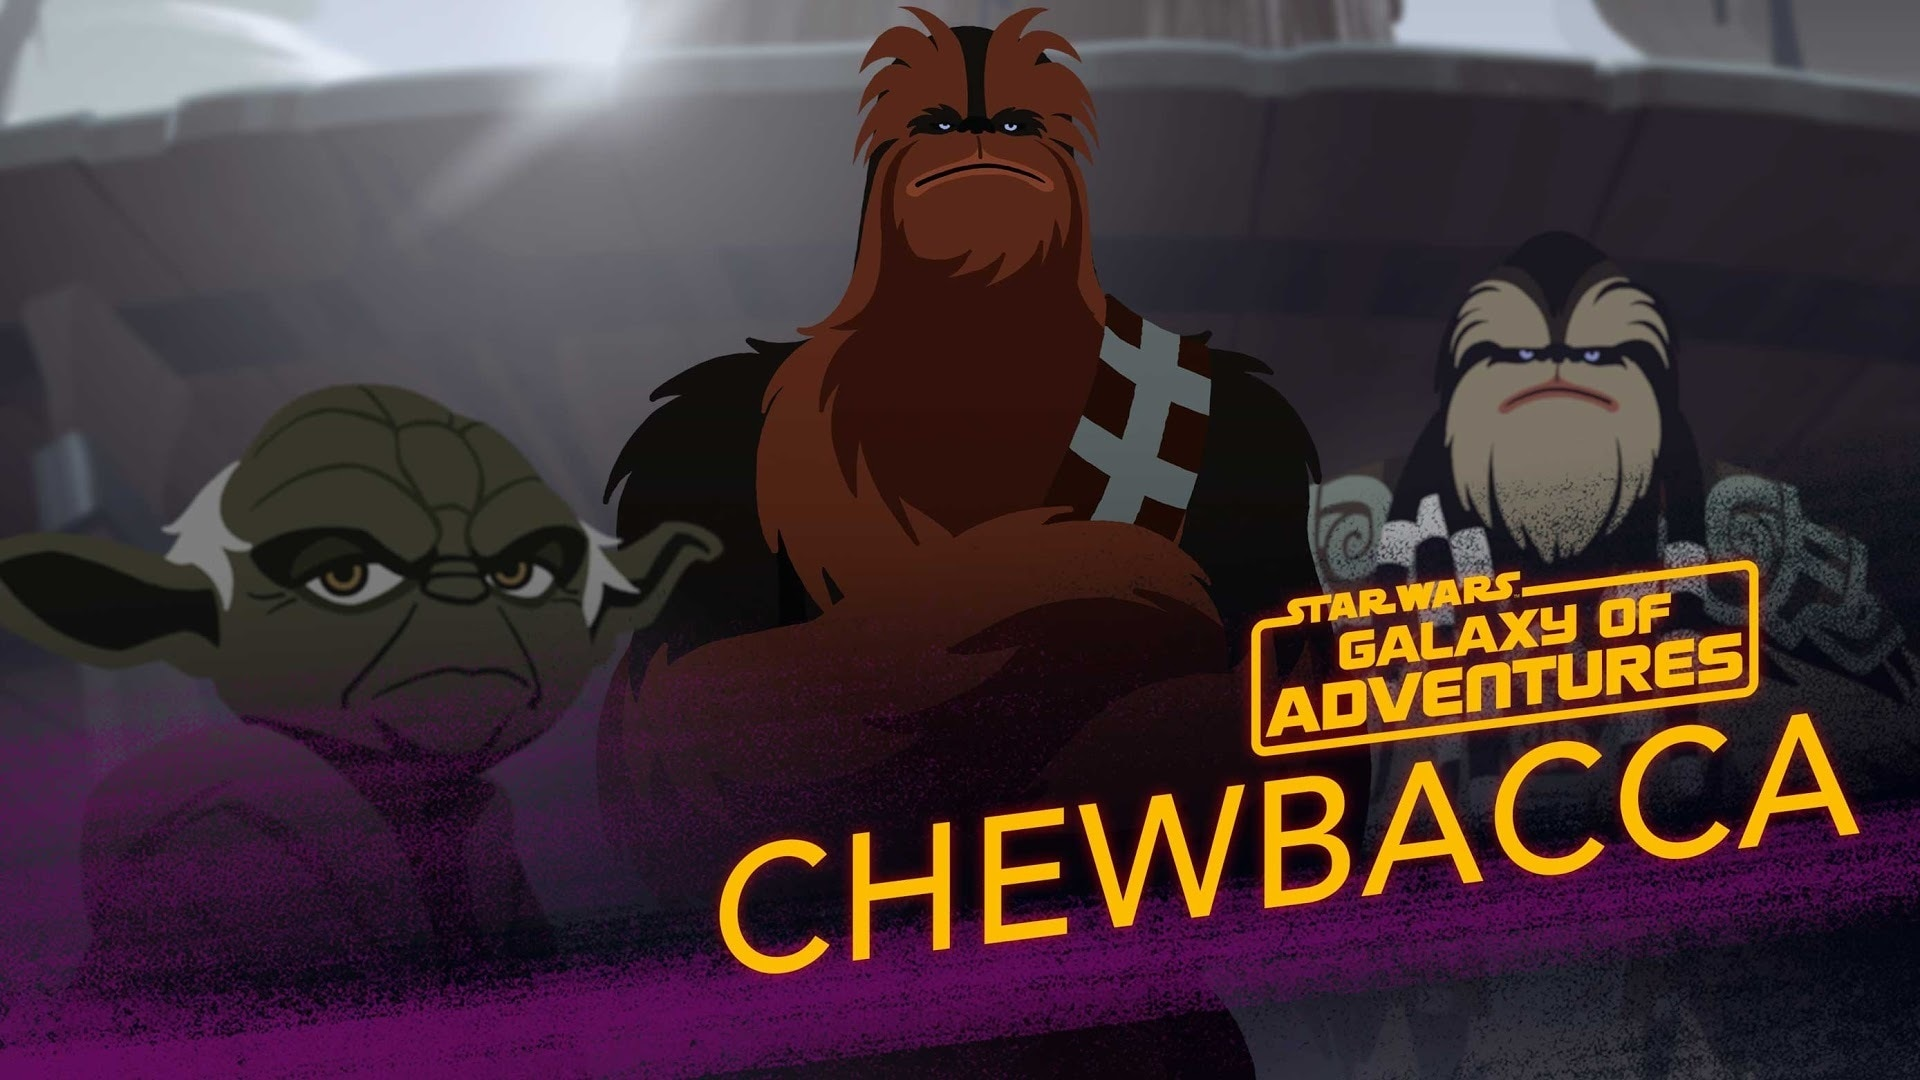 Chewbacca - Wookiee Warrior  | Star Wars Galaxy of Adventures